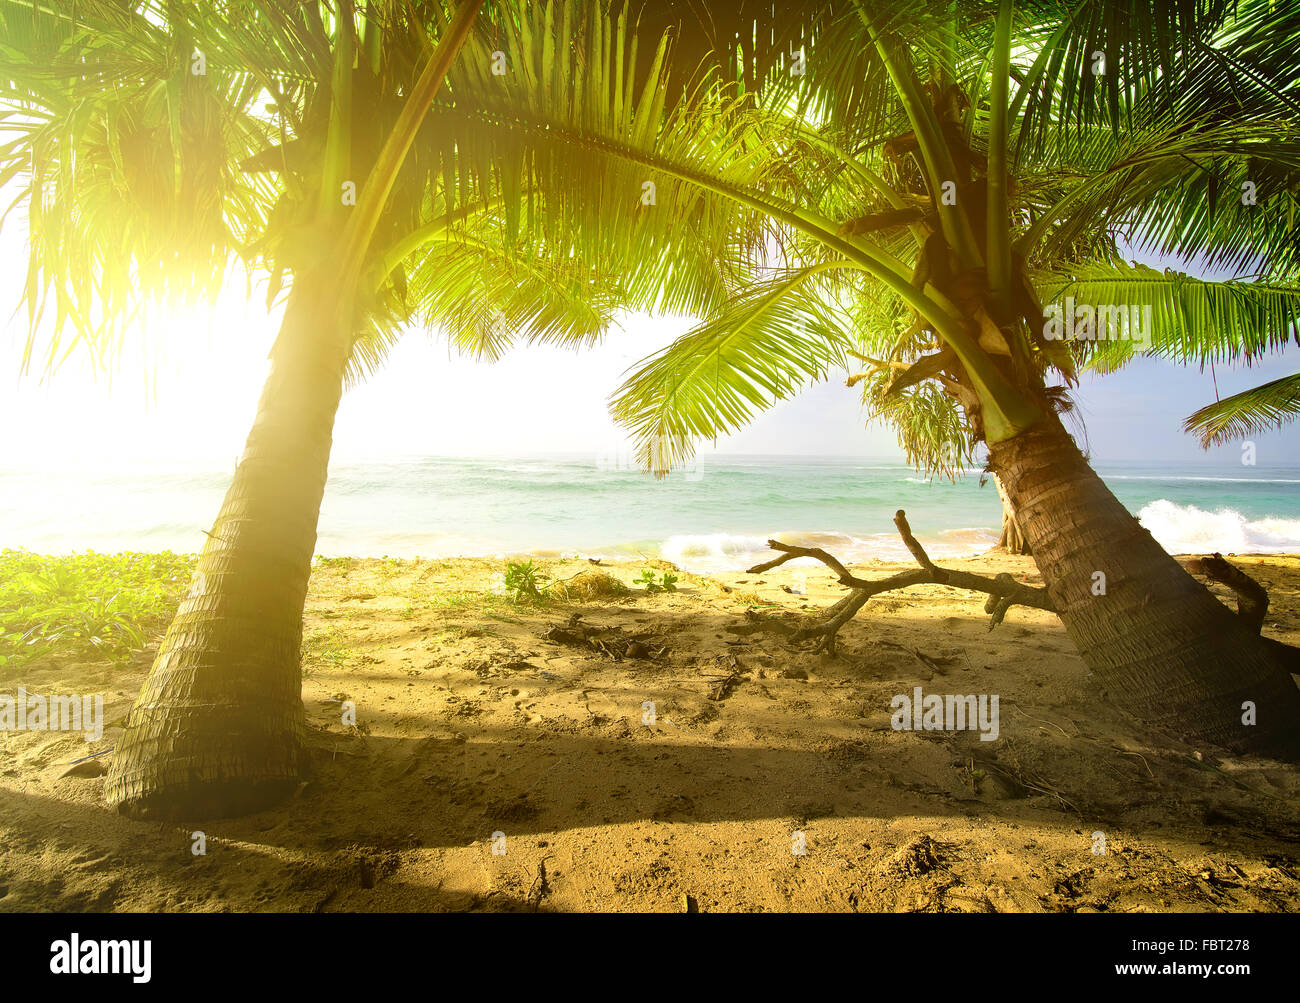 Palm trees and ocean at the bright sunrise - Stock Image